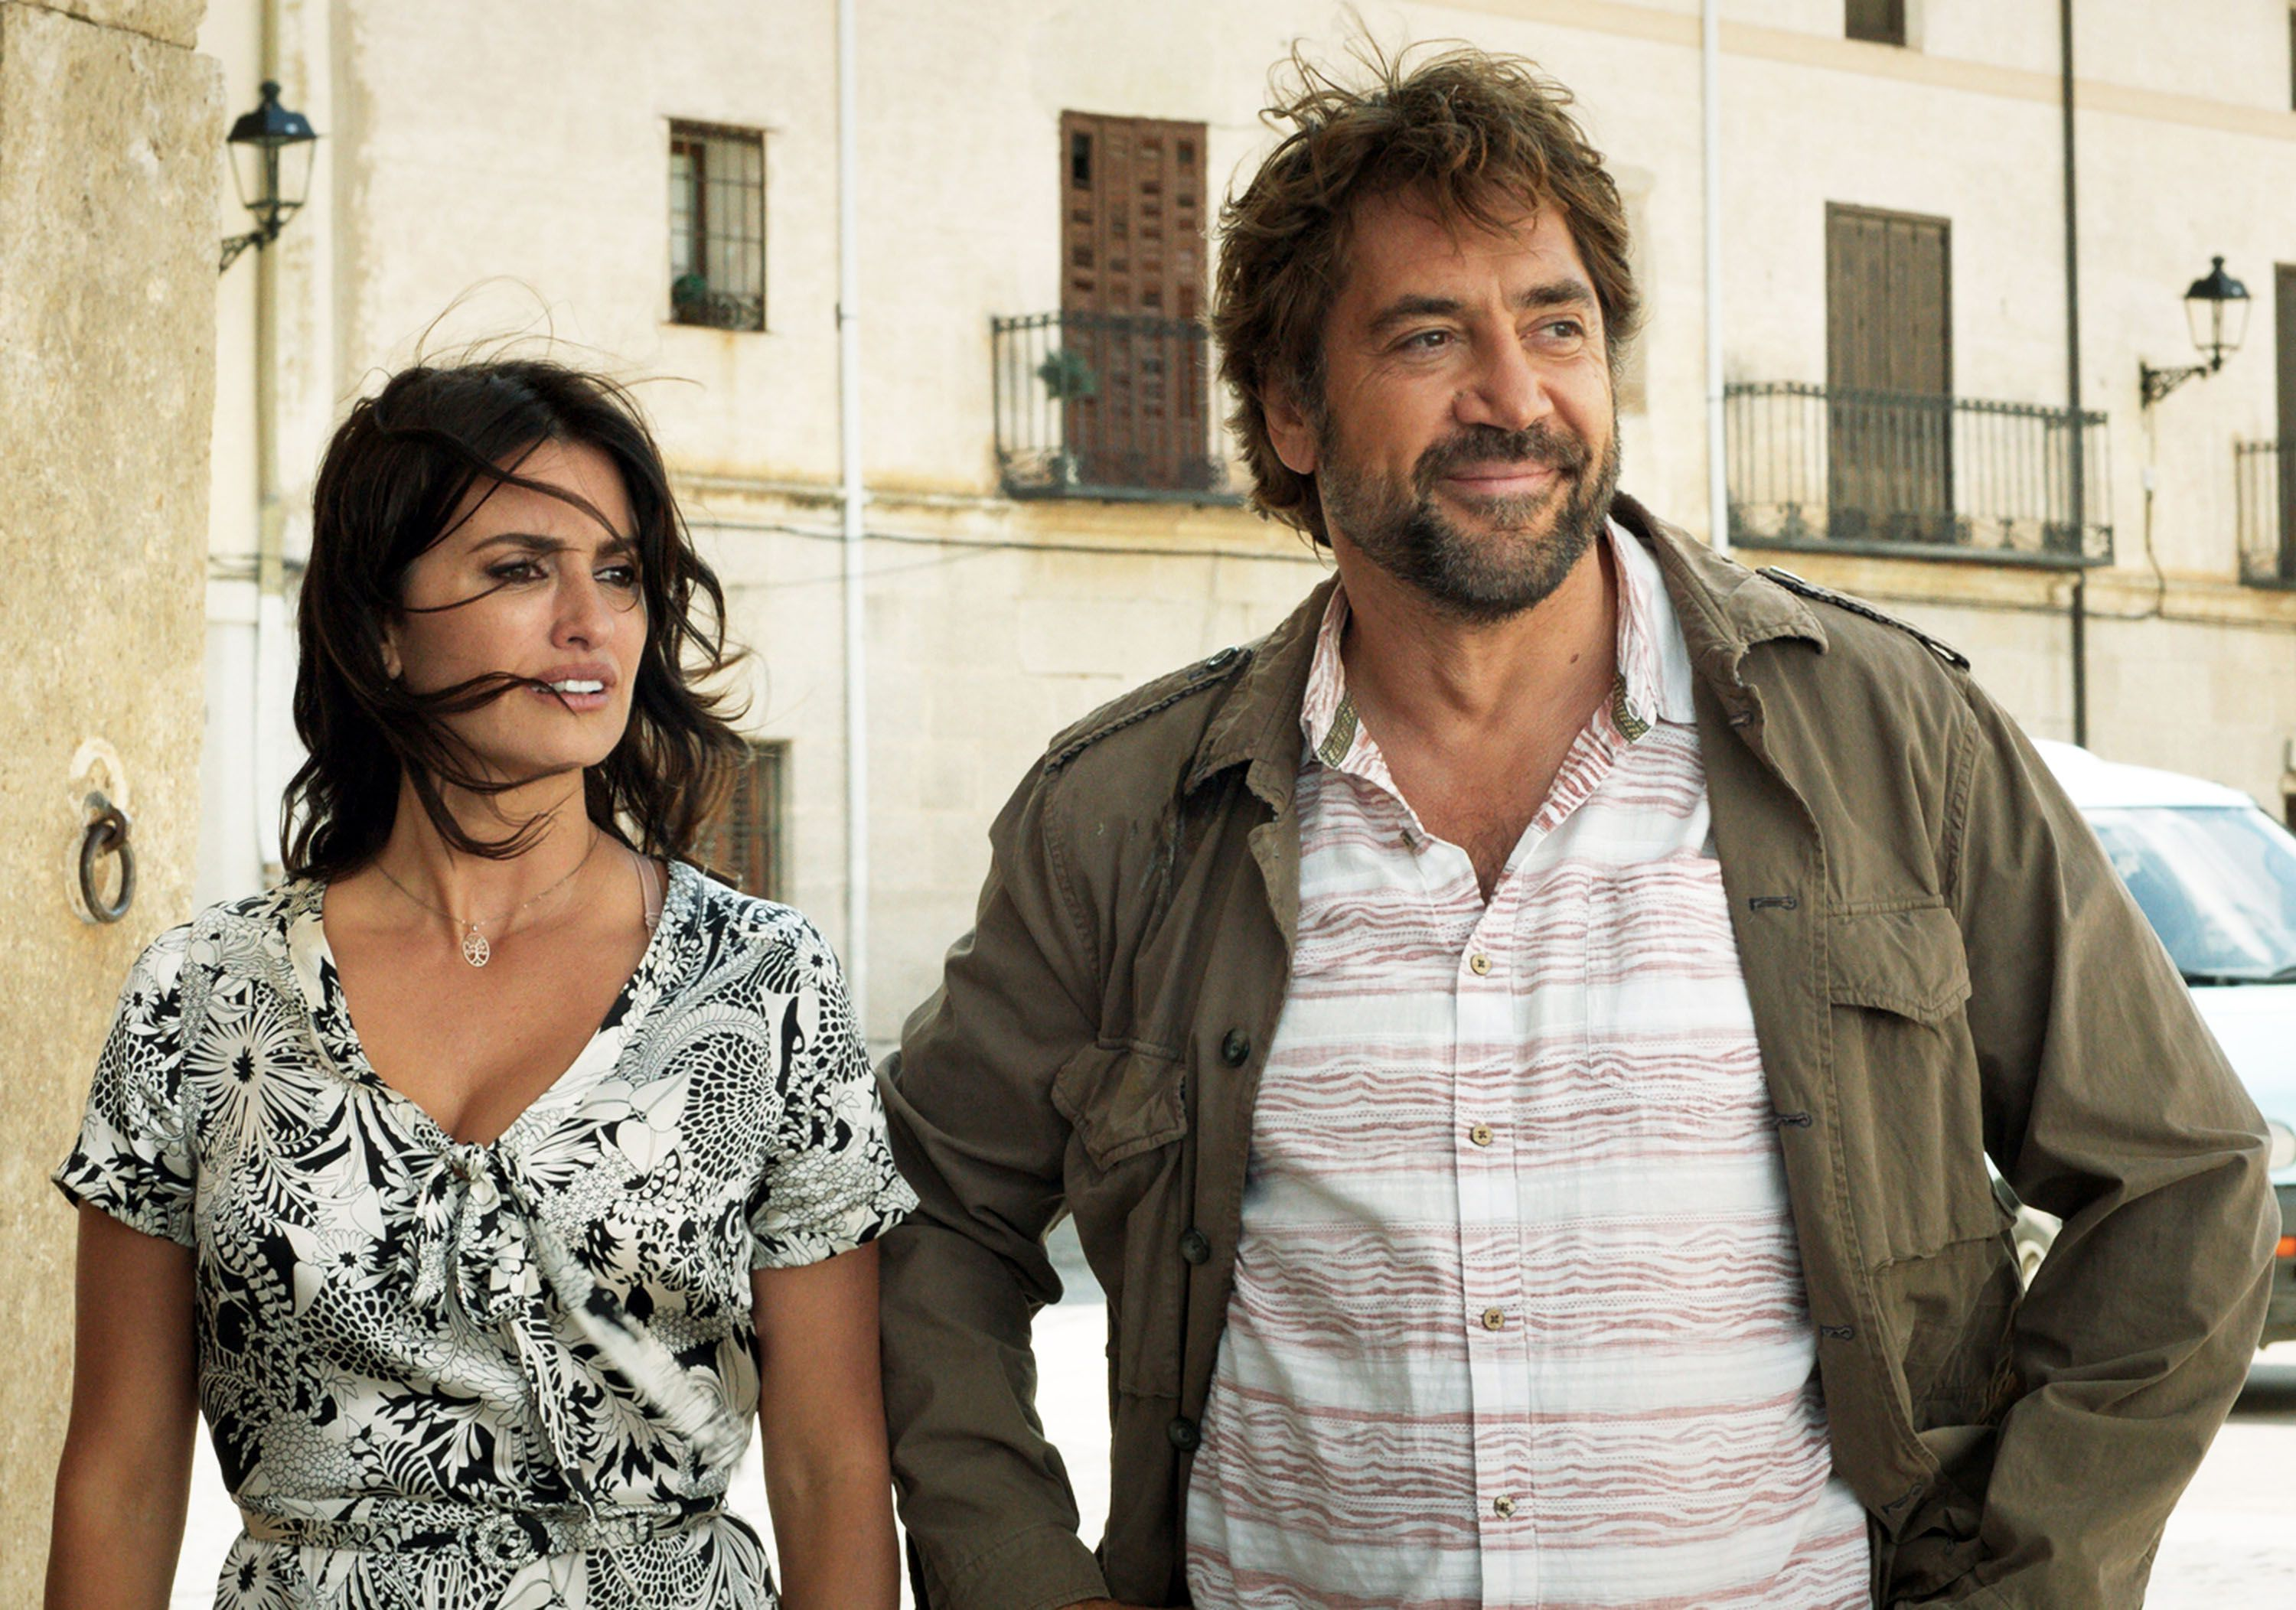 Penélope Cruz on the Intensely Emotional Shoot of 'Everybody Knows' and Her Desire to Direct